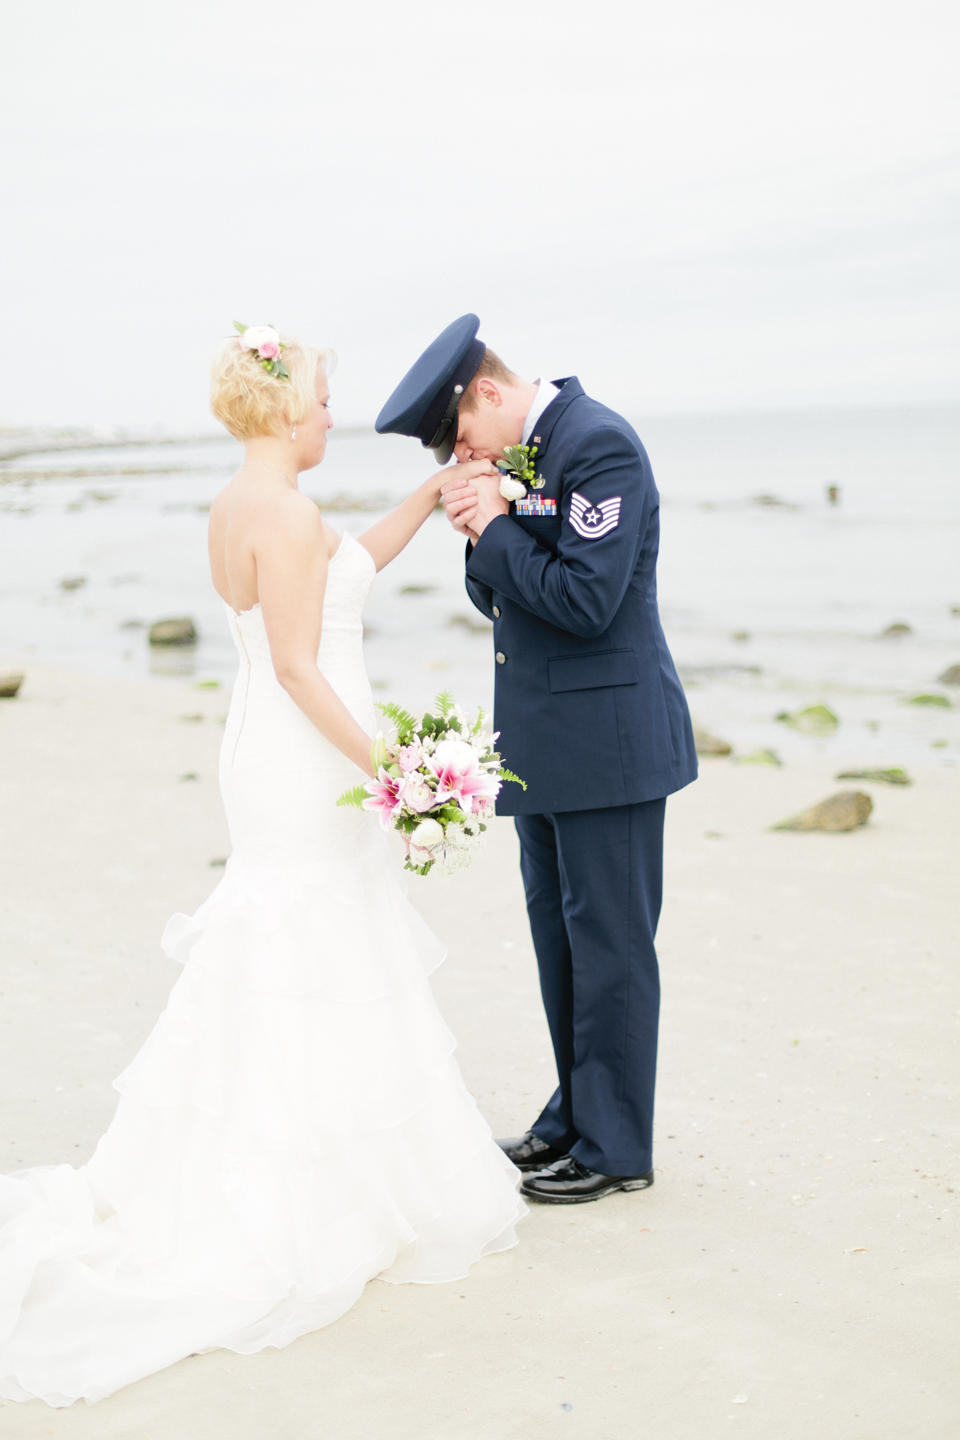 Image of a groom kissing the hand of his bride on the wedding day at the beach in Ponce Inlet, Florida  | Debra Eby Photography Co.